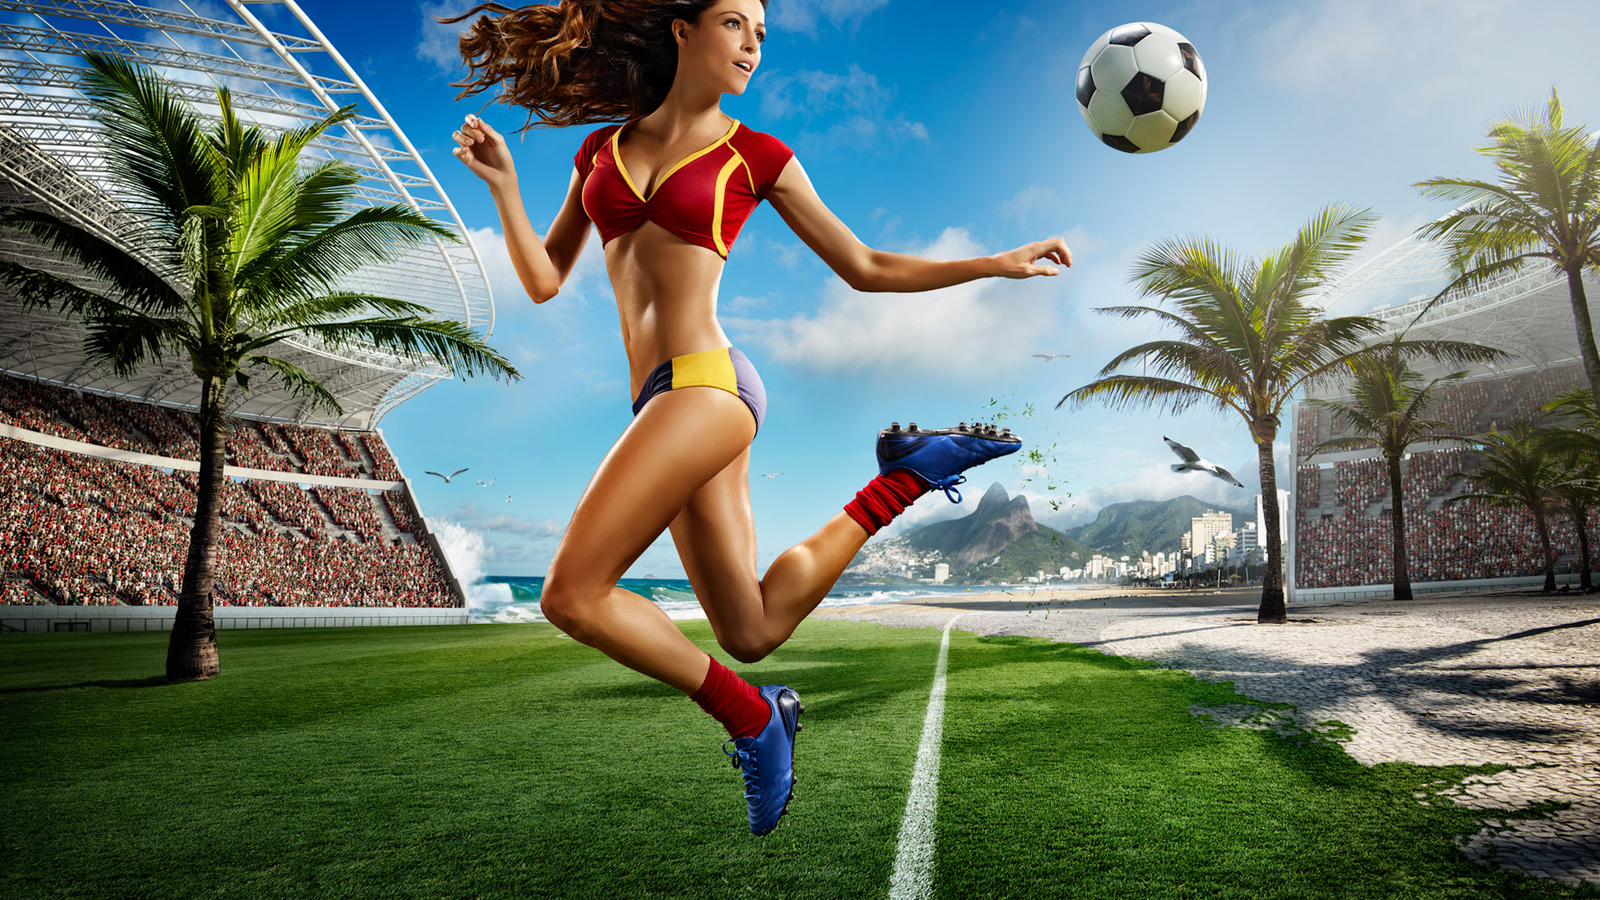 World Cup calendar wallpaper 49560